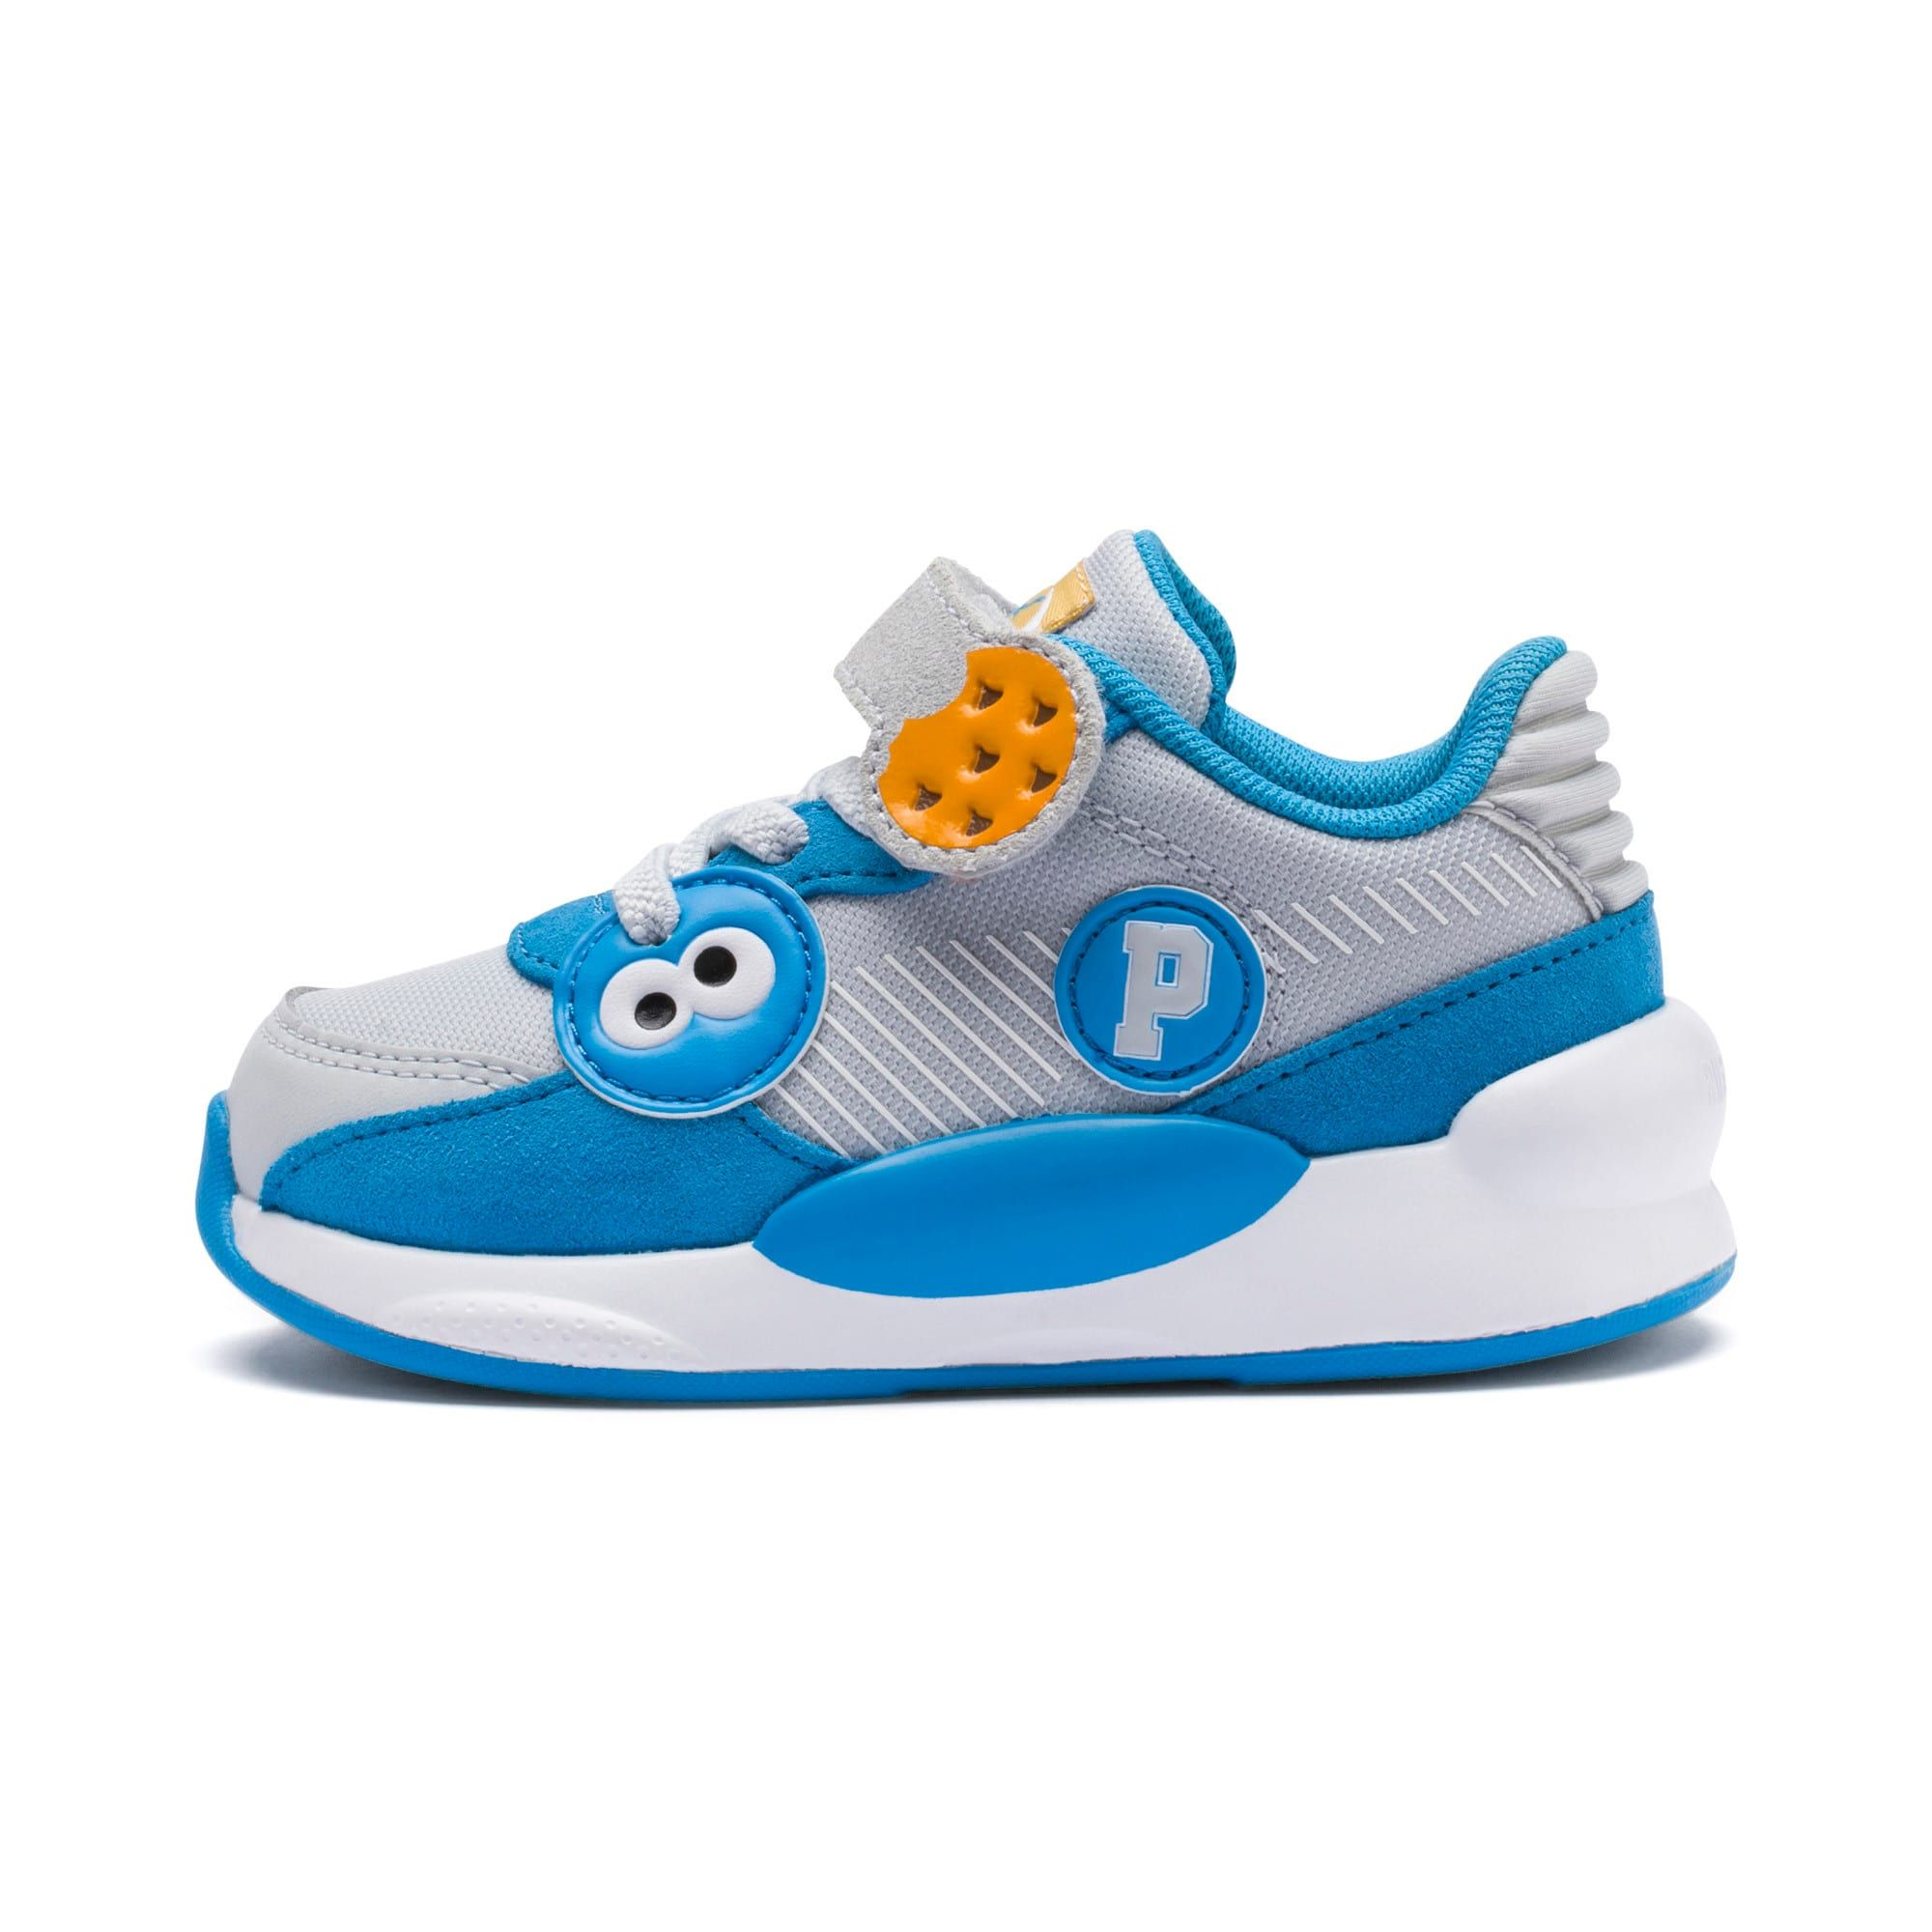 PUMA Sesame Street 50 RS 9.8 Babies' Trainers in Grey Dawn/Azure size 4.5 #minimomentcelebrations